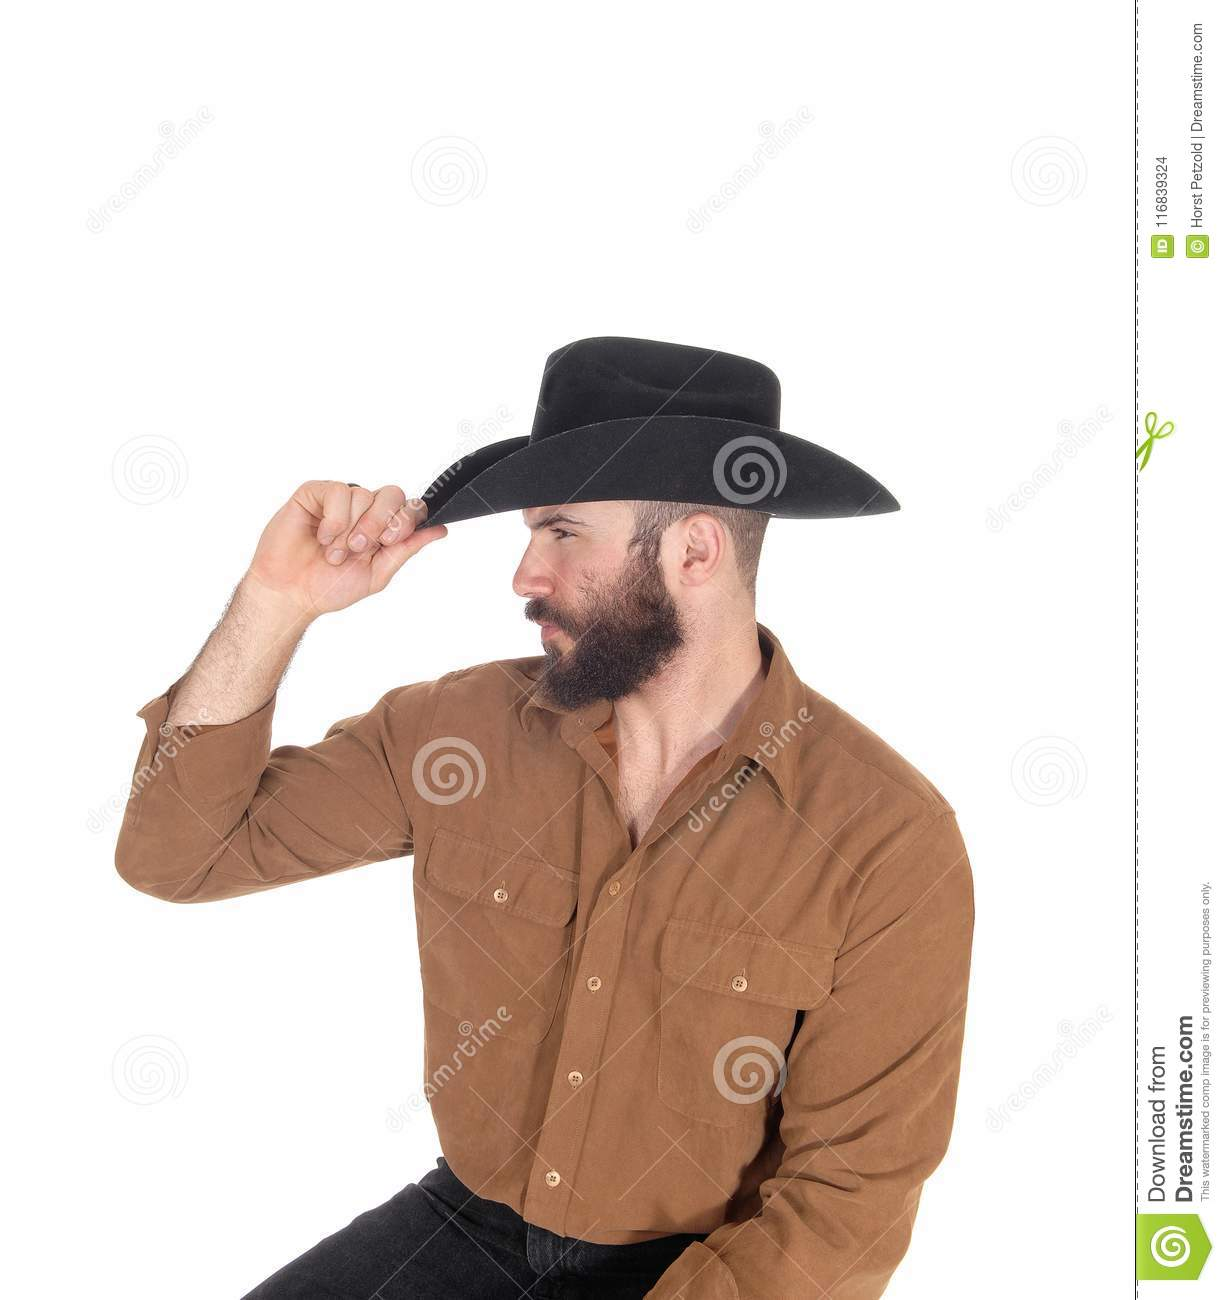 05c635bcf62 A young man sitting on a chair in profile wearing a black cowboy hat and  looking away